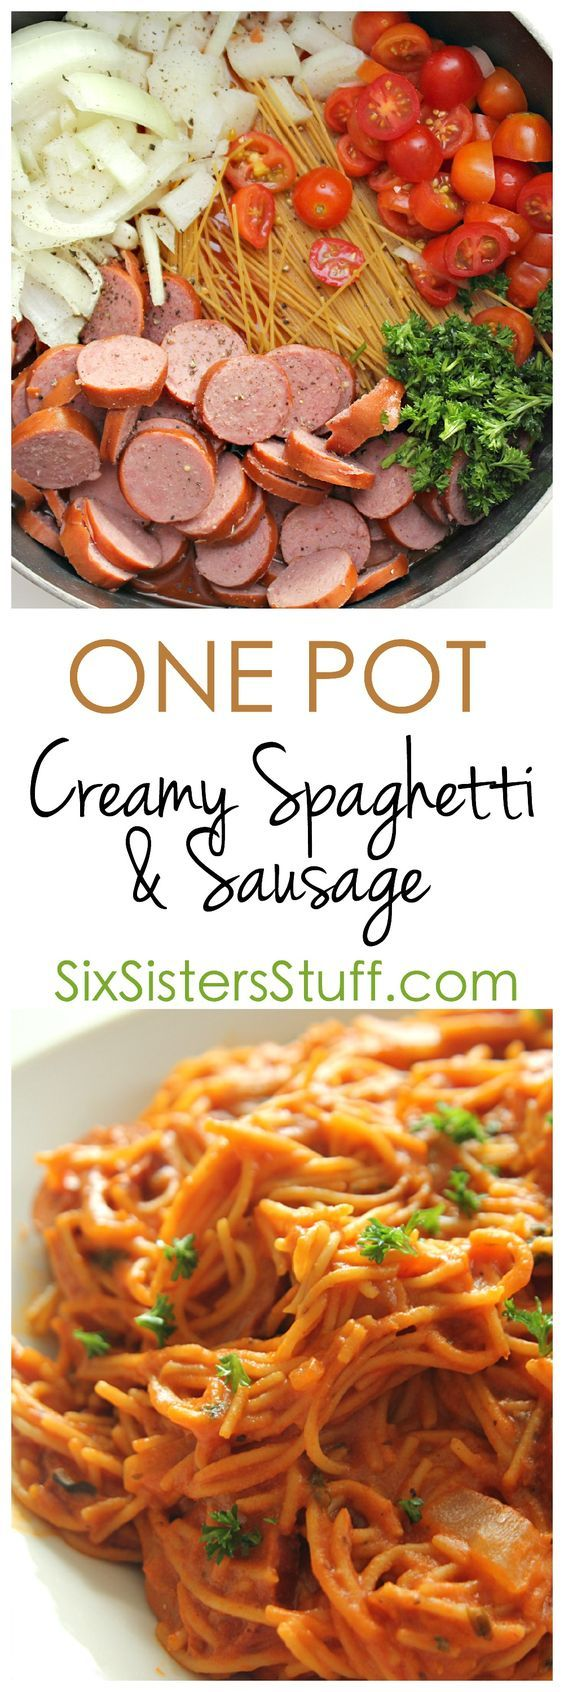 One Pot Creamy Spaghetti and Sausage Recipe | Six Sisters' Stuff